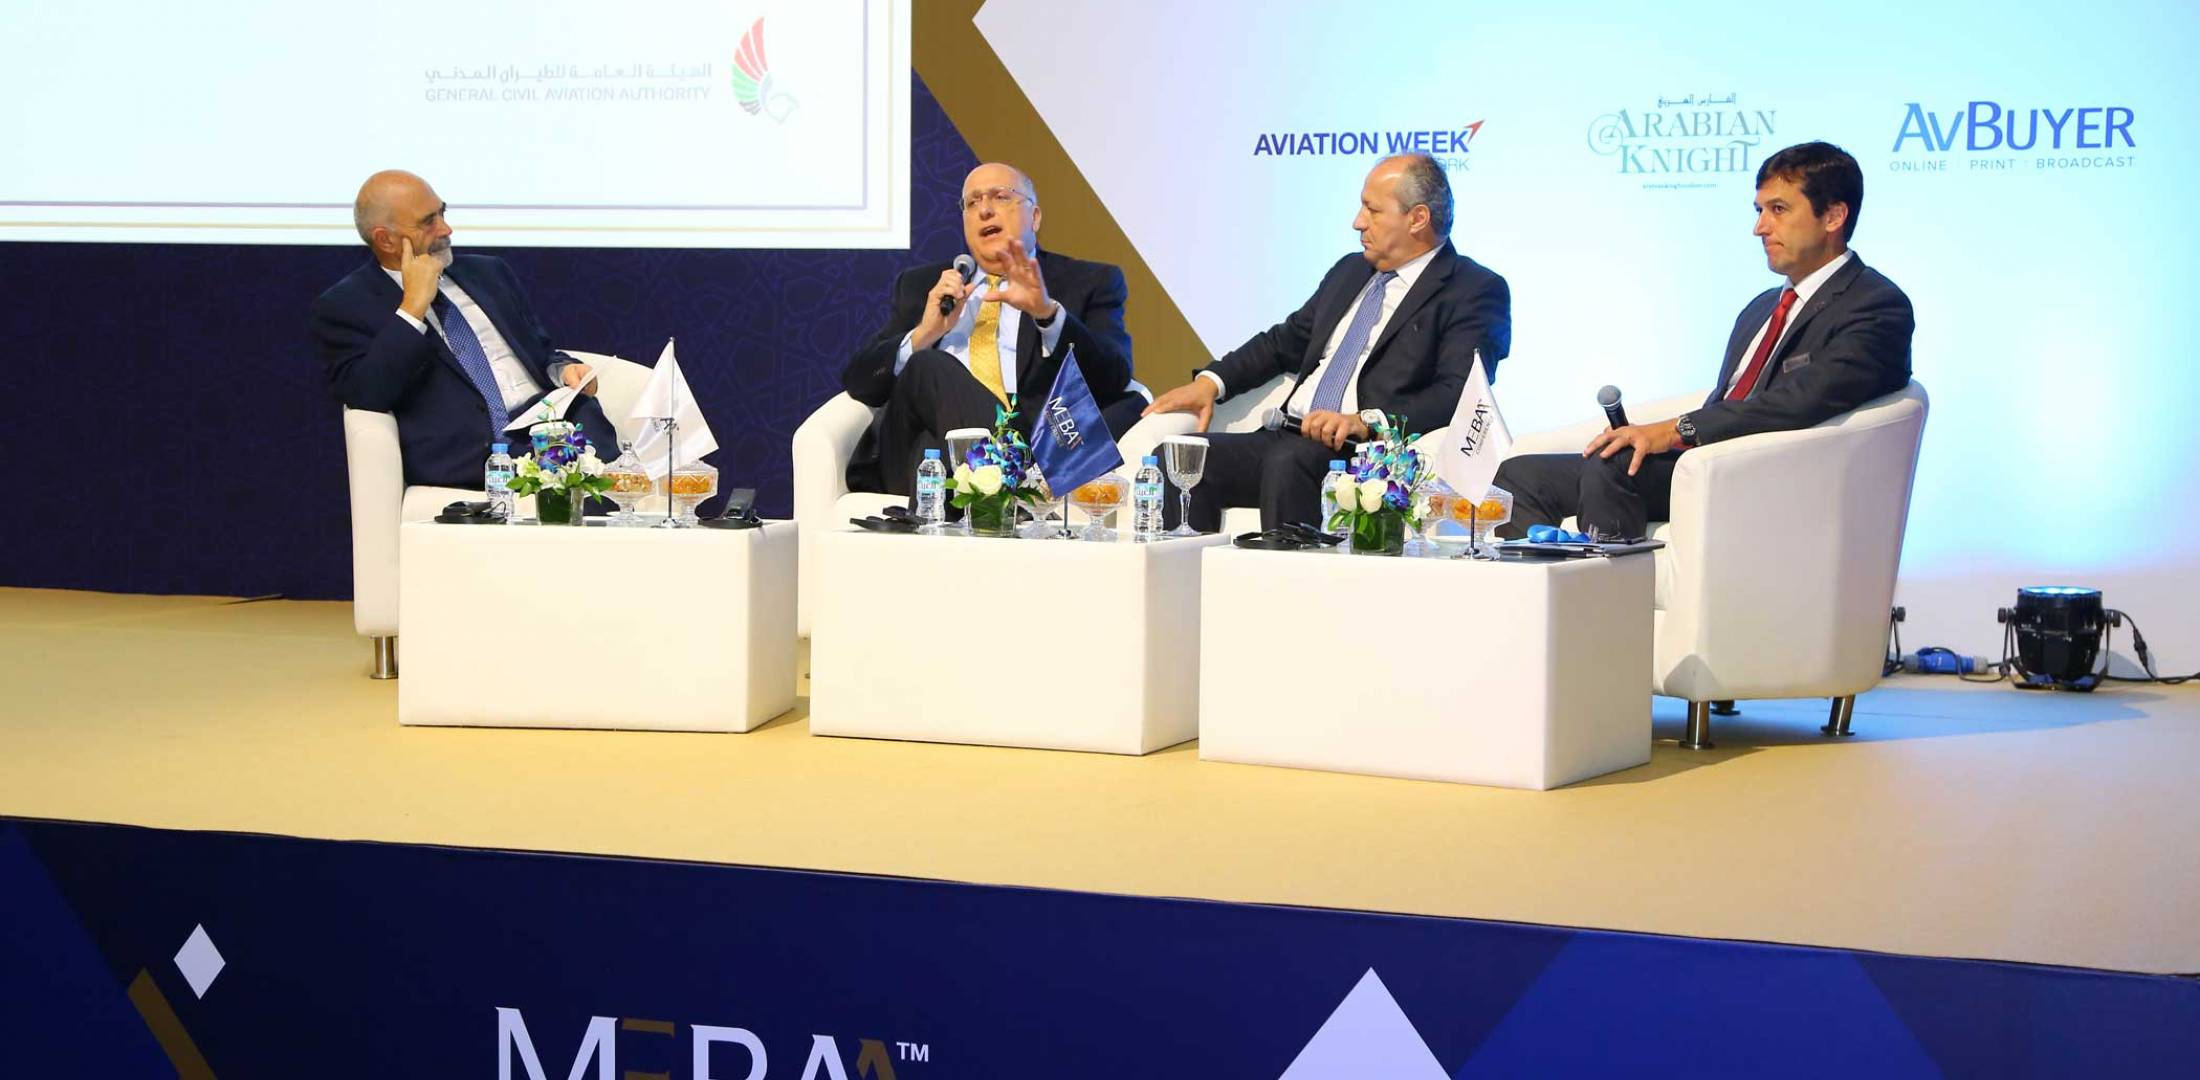 MEBAA Conference